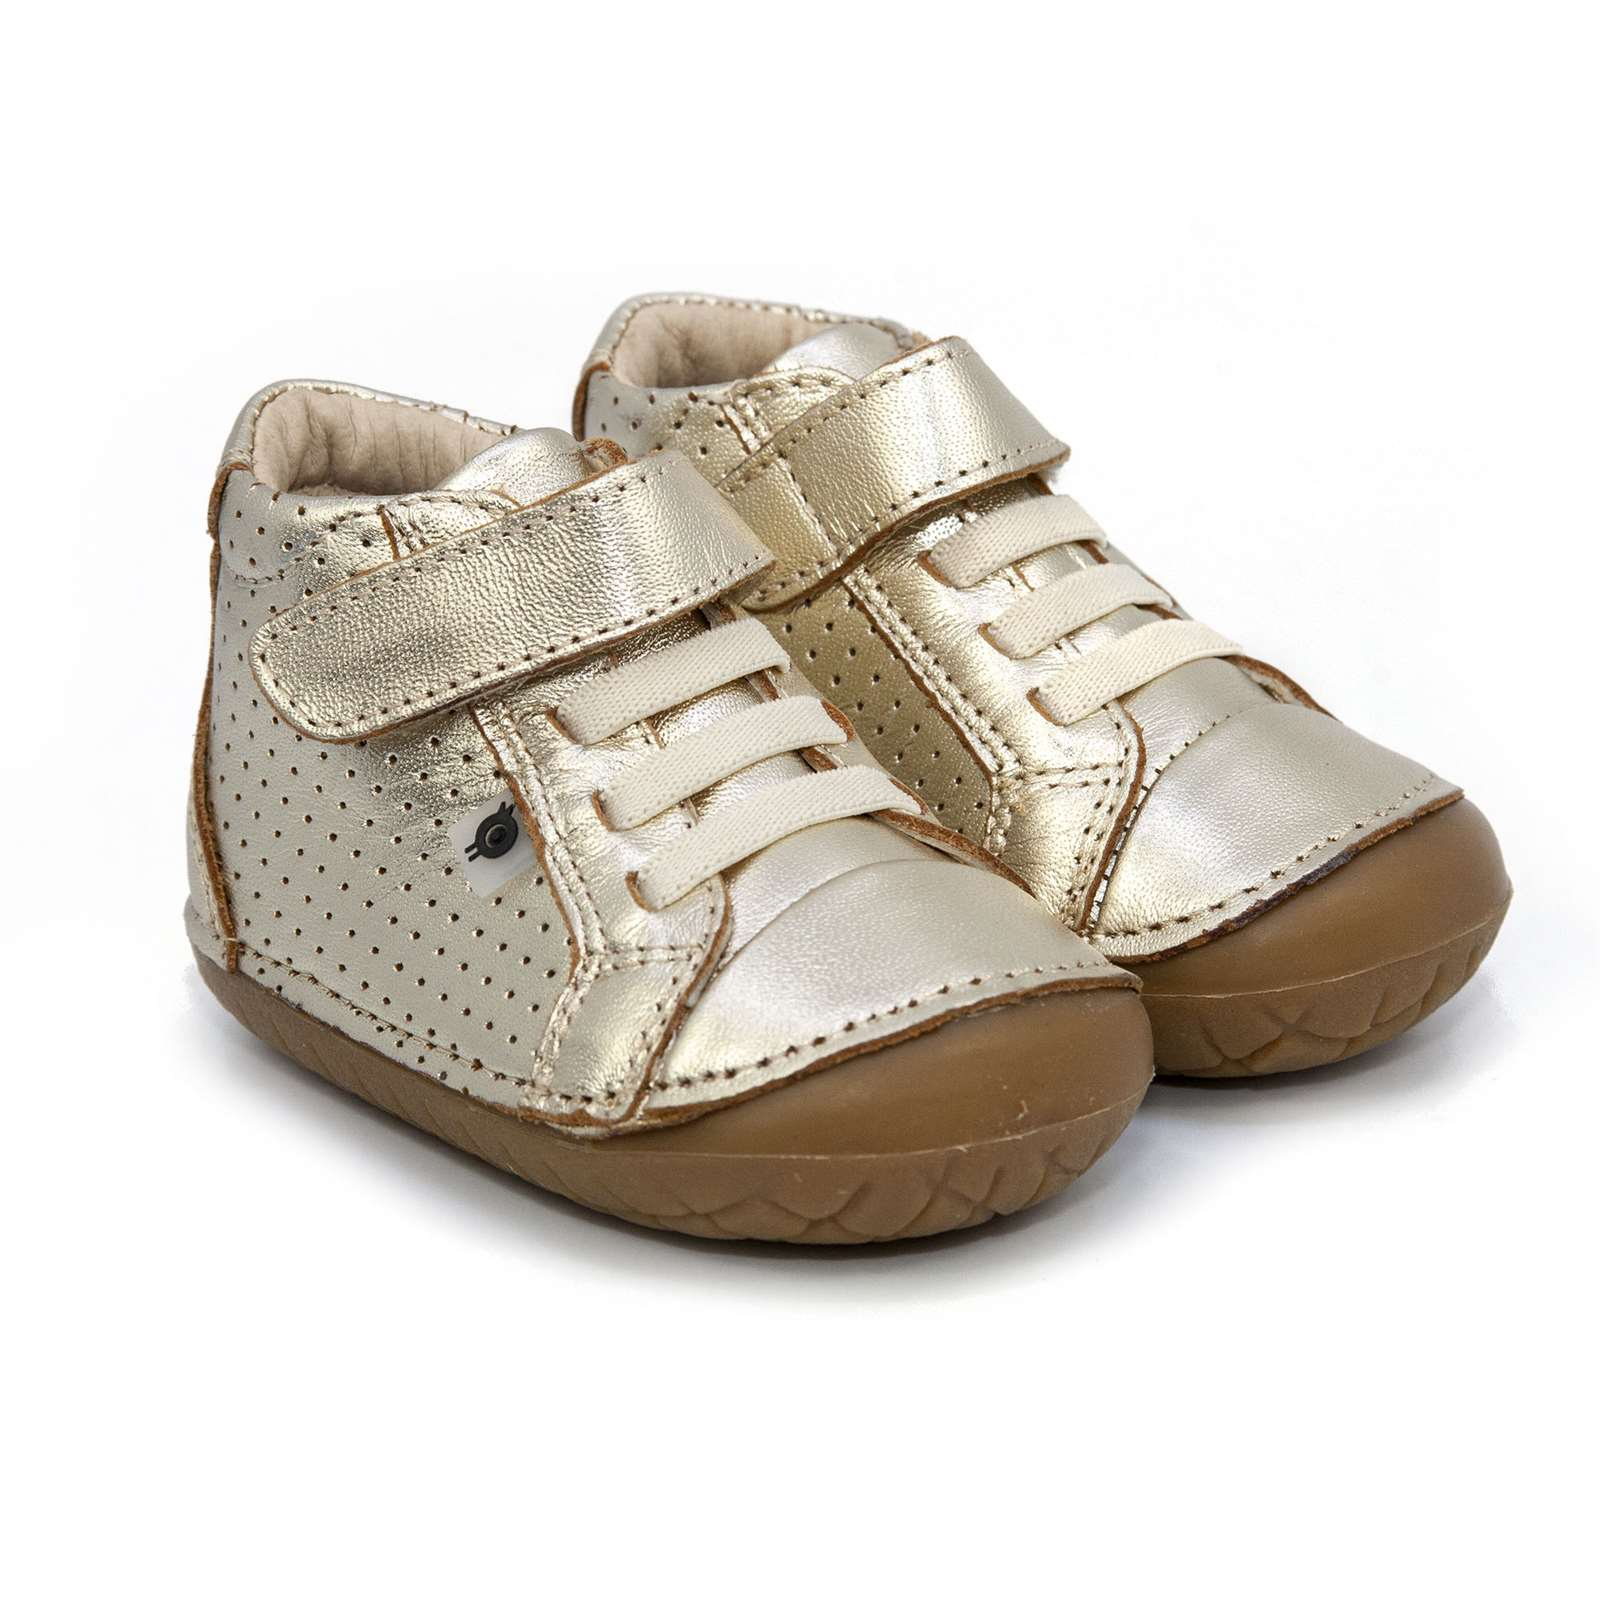 Old Soles Toddlers Pave Cheer Shoes